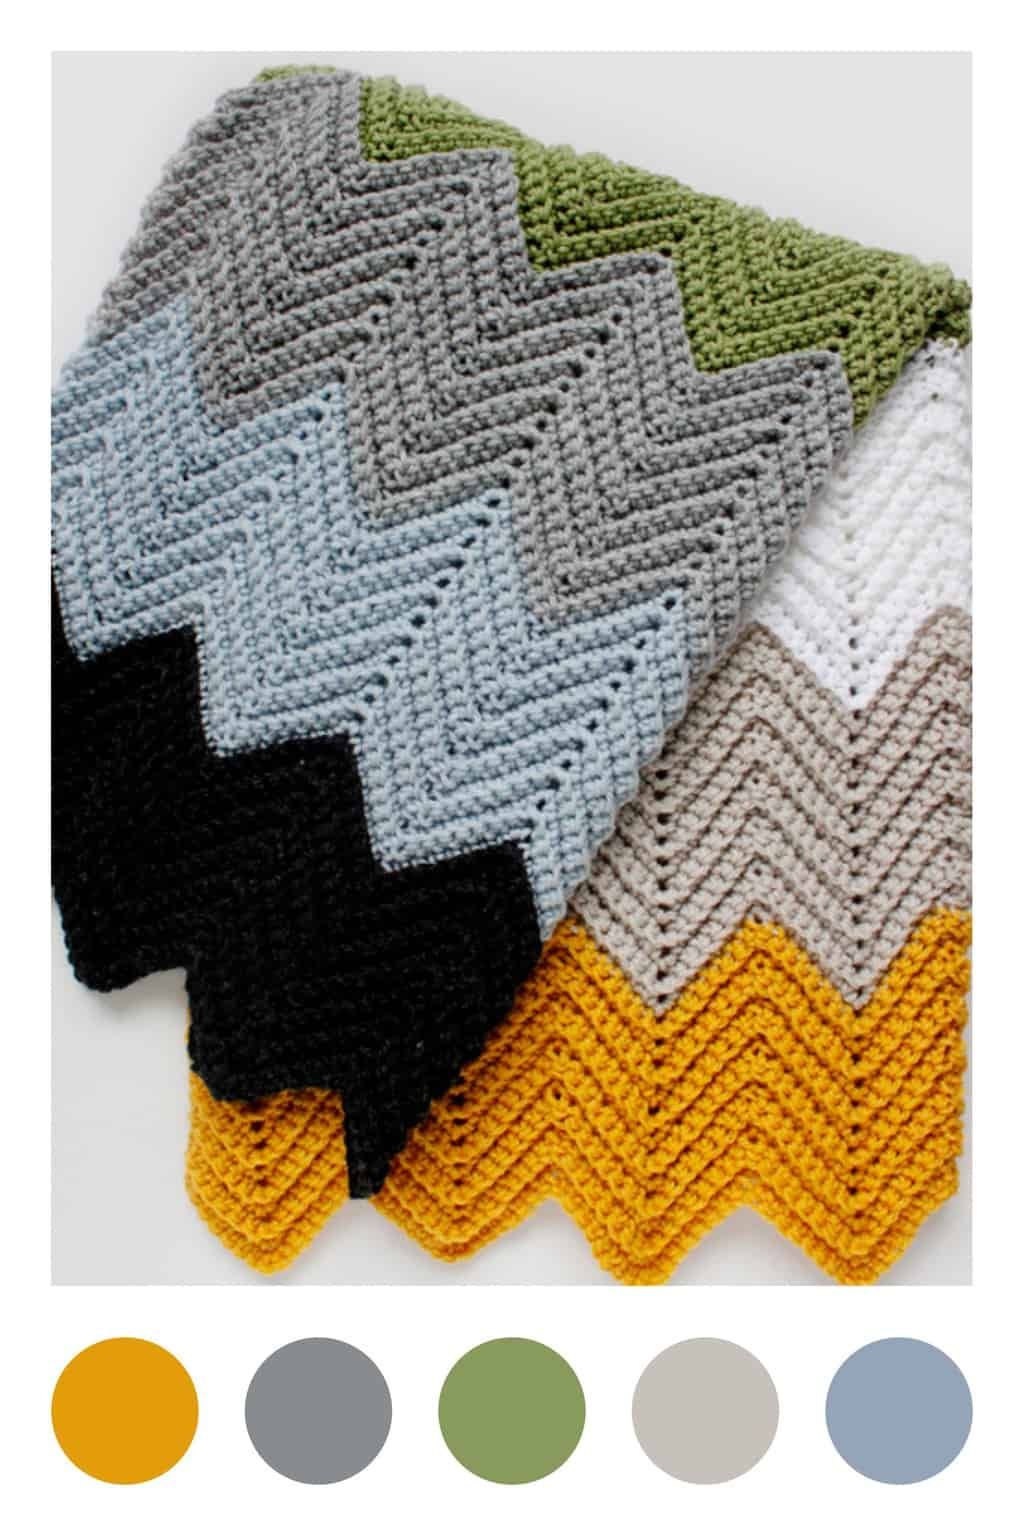 Colorful Chevron Crochet Blanket Pattern